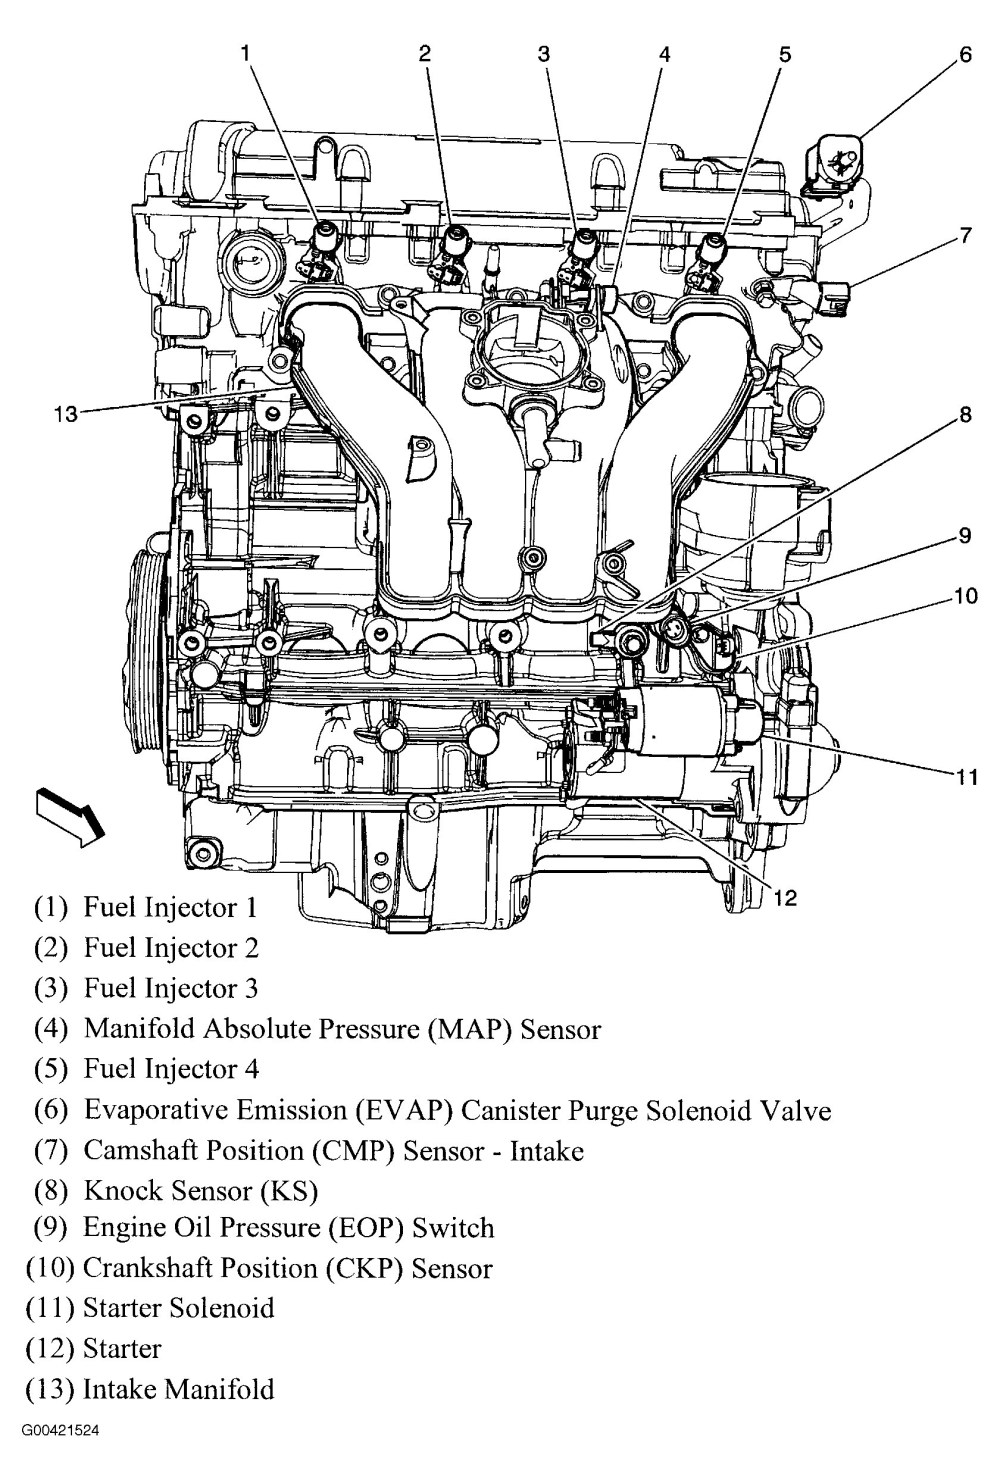 medium resolution of 1994 camero 3 4 liter gm engine diagram wiring diagram datasource2002 camaro engine diagram wiring diagram